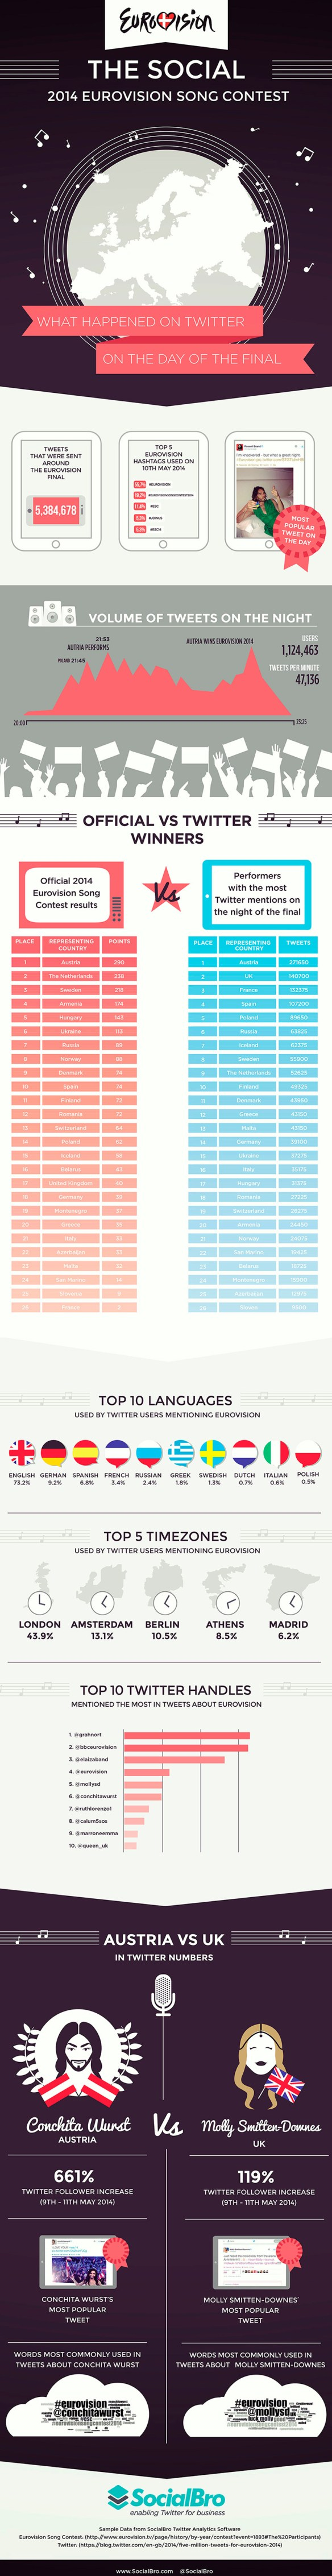 eurovision_infographic_Eng-socialbro-mid-res